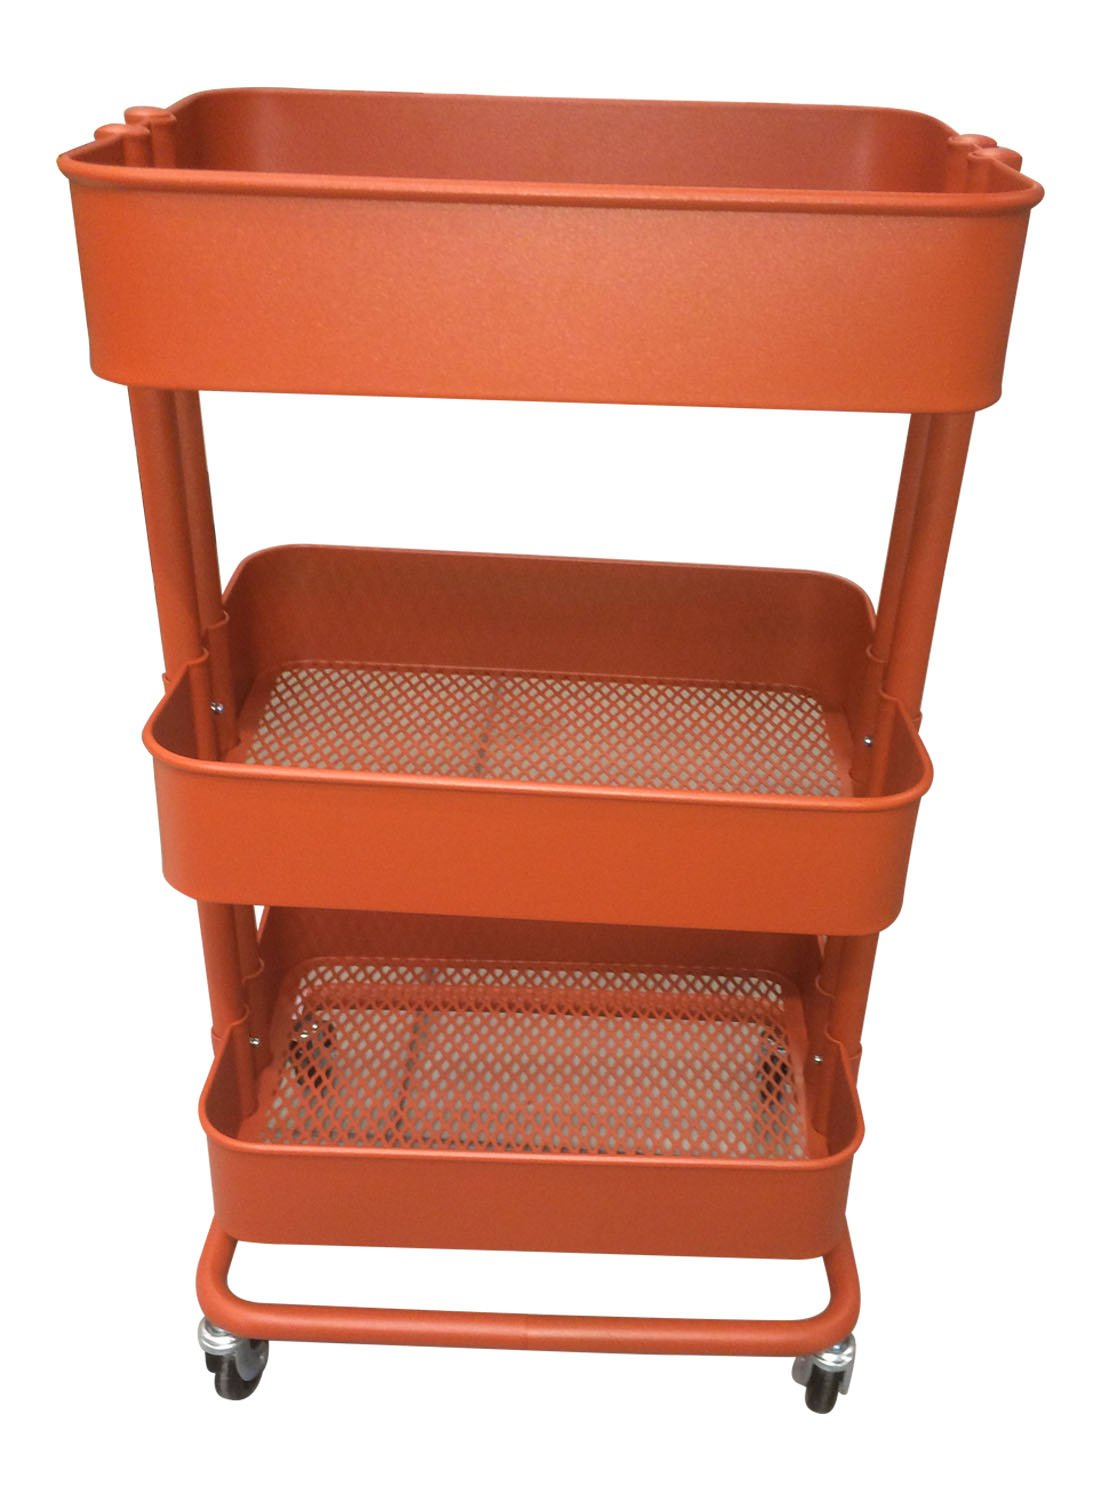 Amazon.com: RASKOG 1419 503 317 62 Home Kitchen Storage Utility Cart   Red  Brown: Home U0026 Kitchen